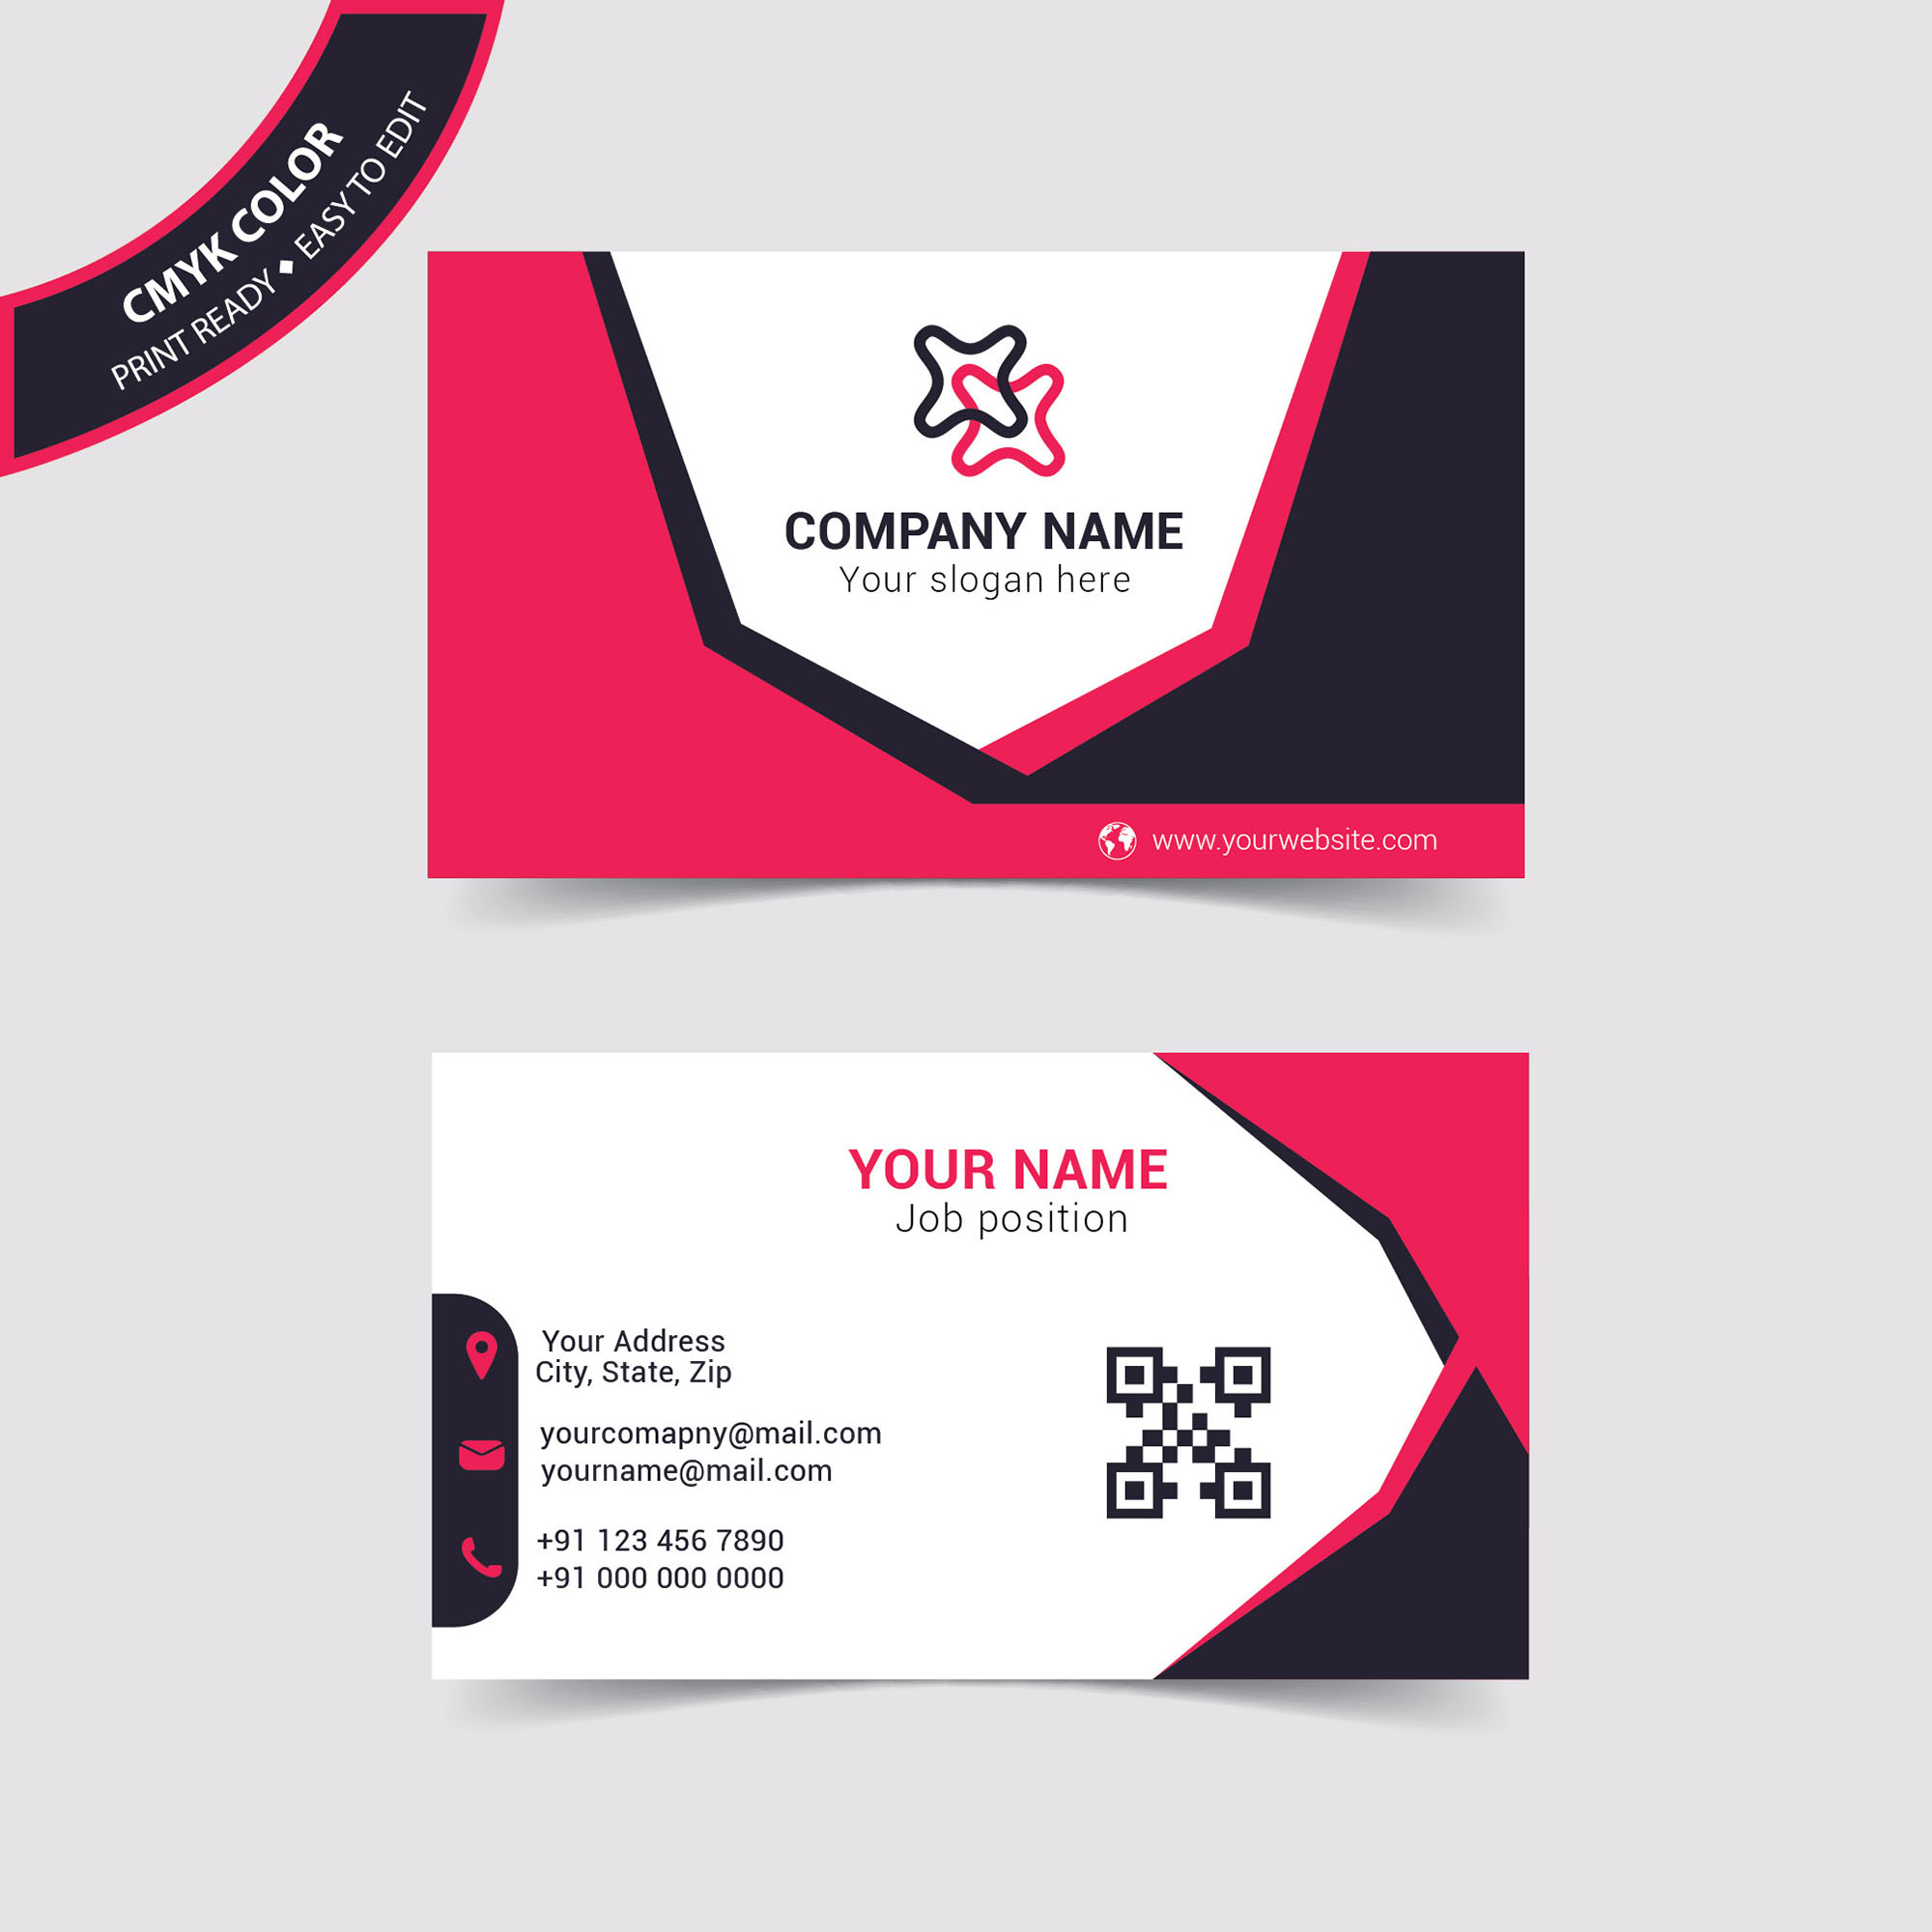 Personal name card design free download print template wisxi business card business cards business card design business card template design templates accmission Images